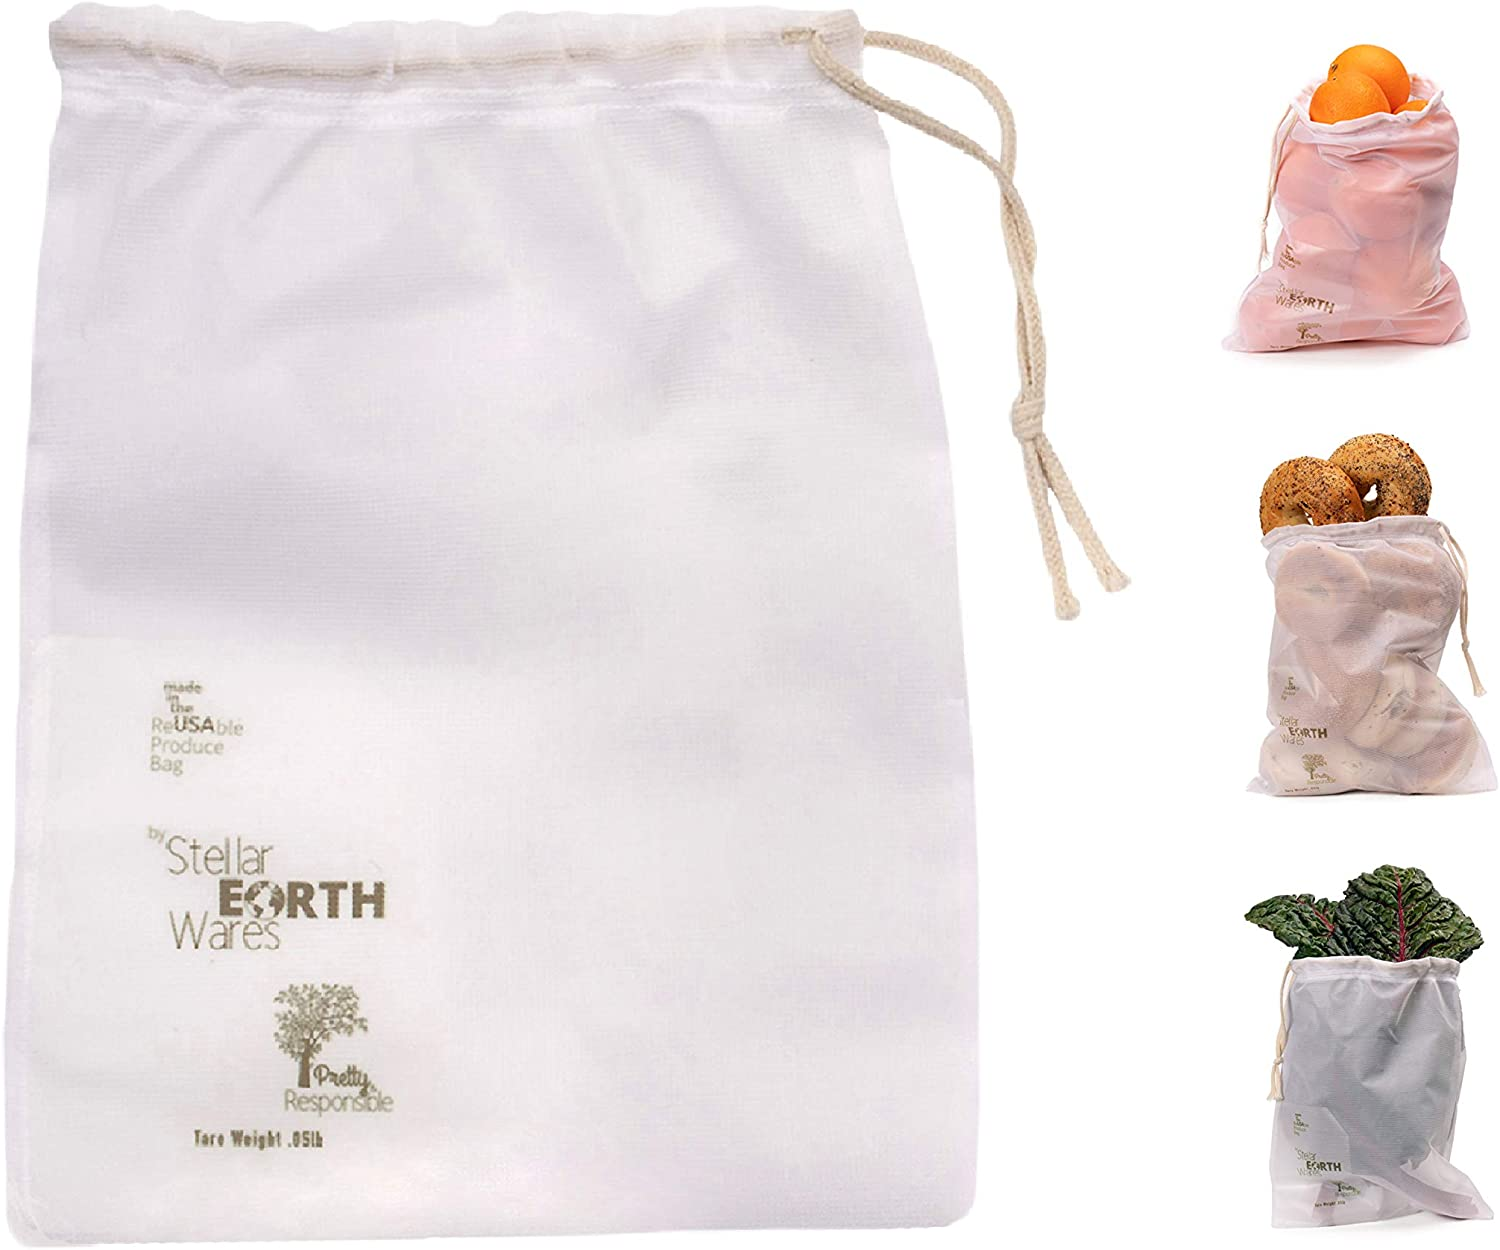 Premium Reusable Produce Bag. Made in The USA. Mesh Vegetable Bag. Made in Vermont. 4Piece Ecofriendly Washable with Tare Weight. Unique Drawstring Design. Lightweight. Double Stitched Seams.